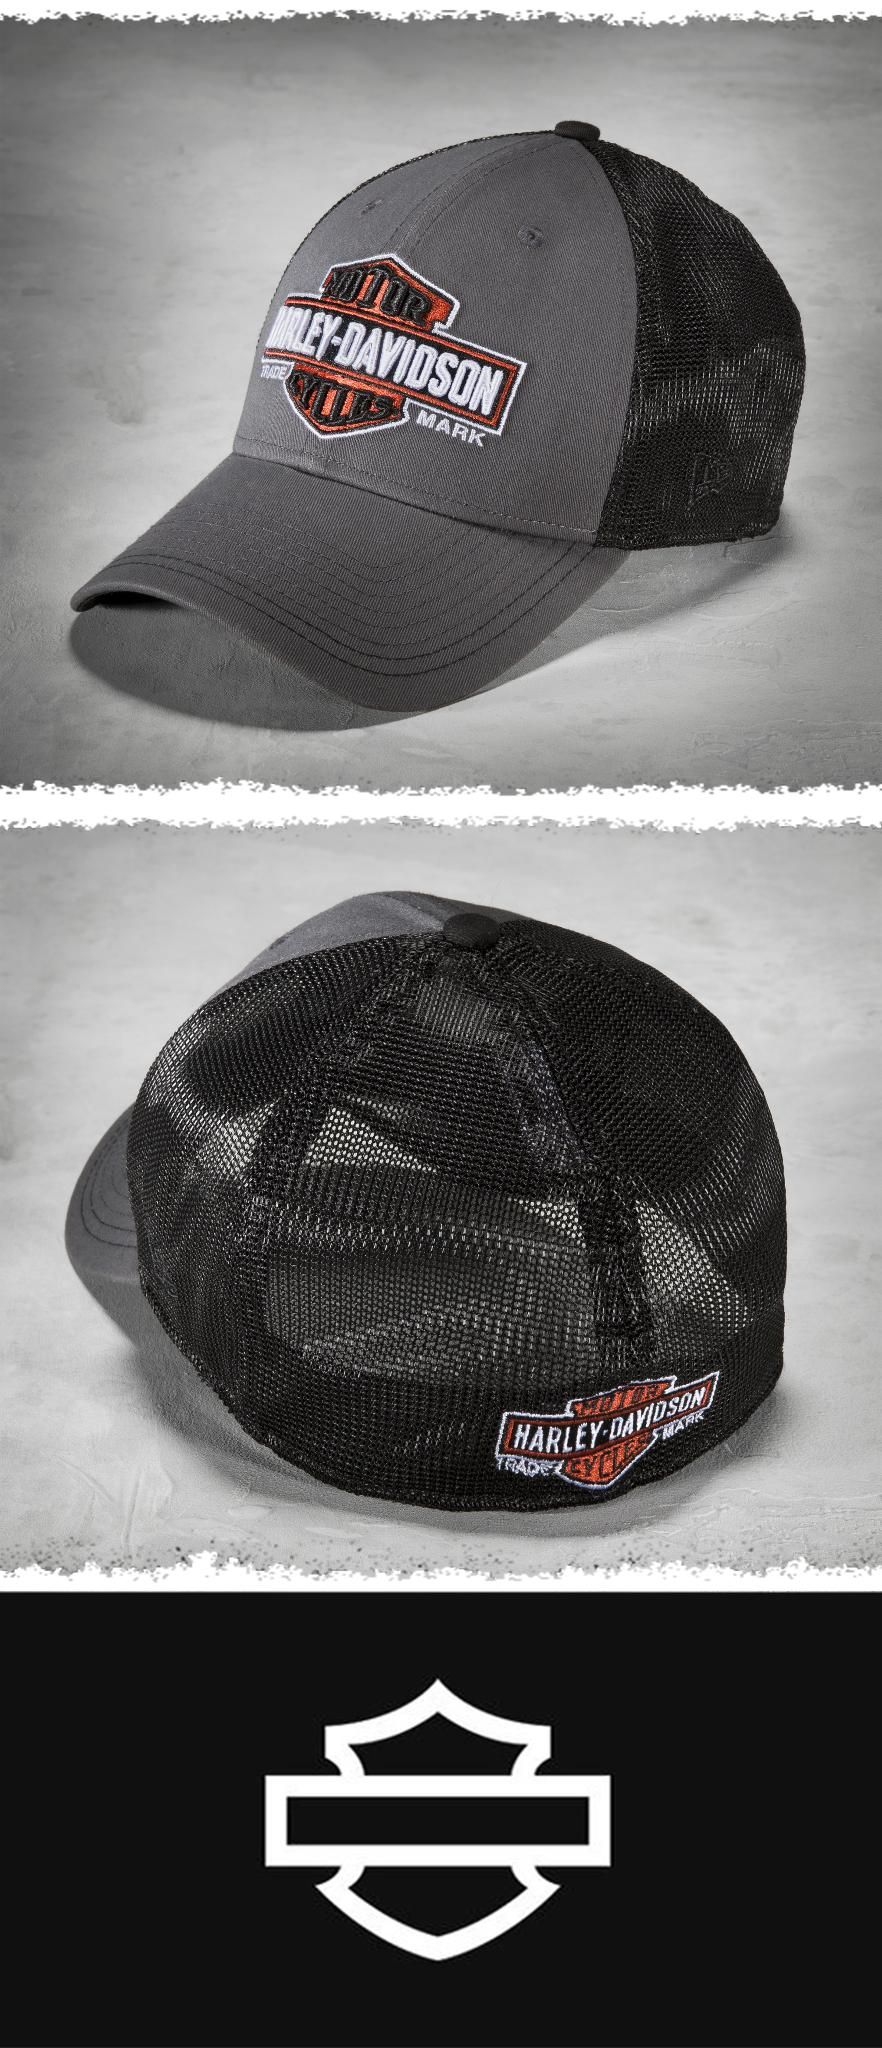 c0439bfa758a7 Retro trucker styling with a modern stretch fit.